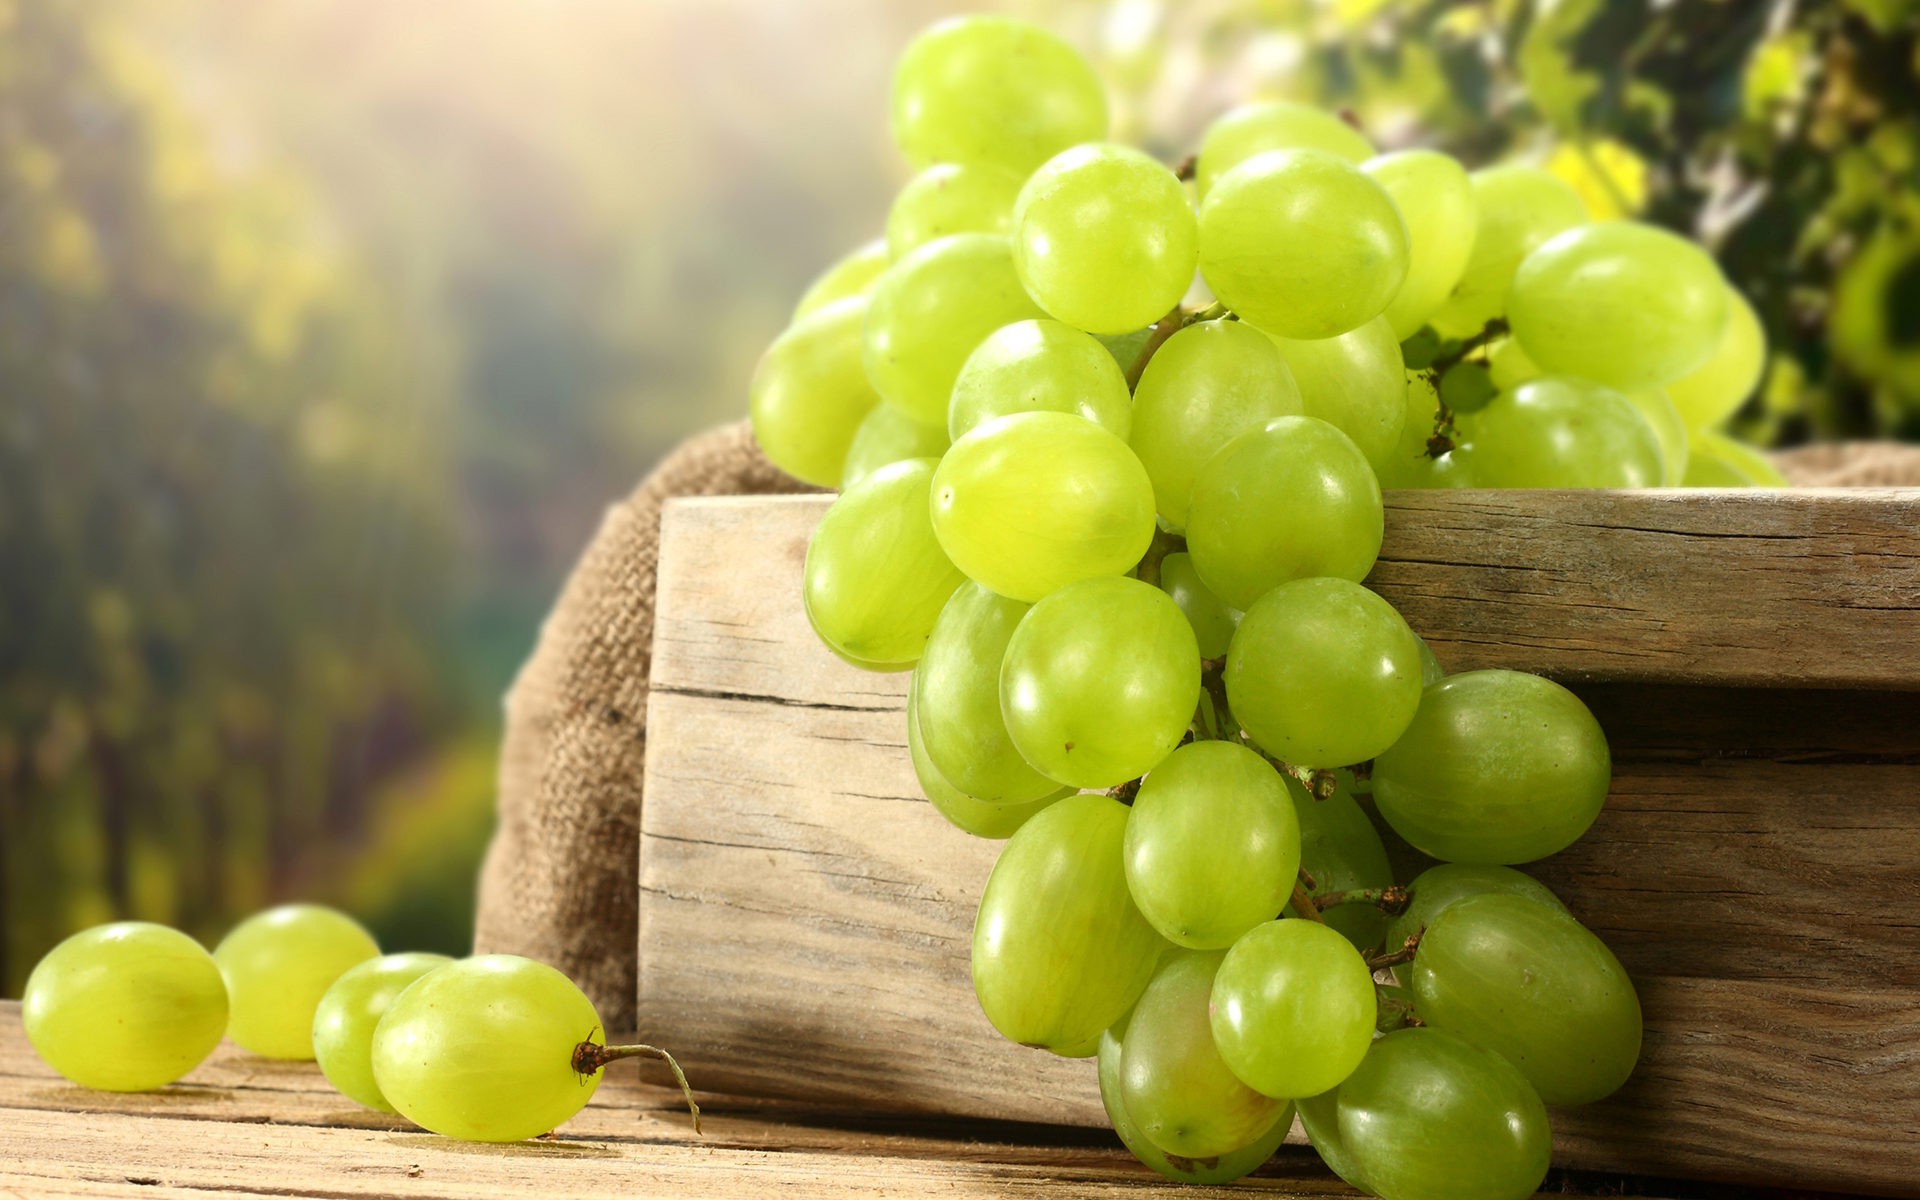 Sweet green grapes wallpaper   ForWallpapercom 1920x1200